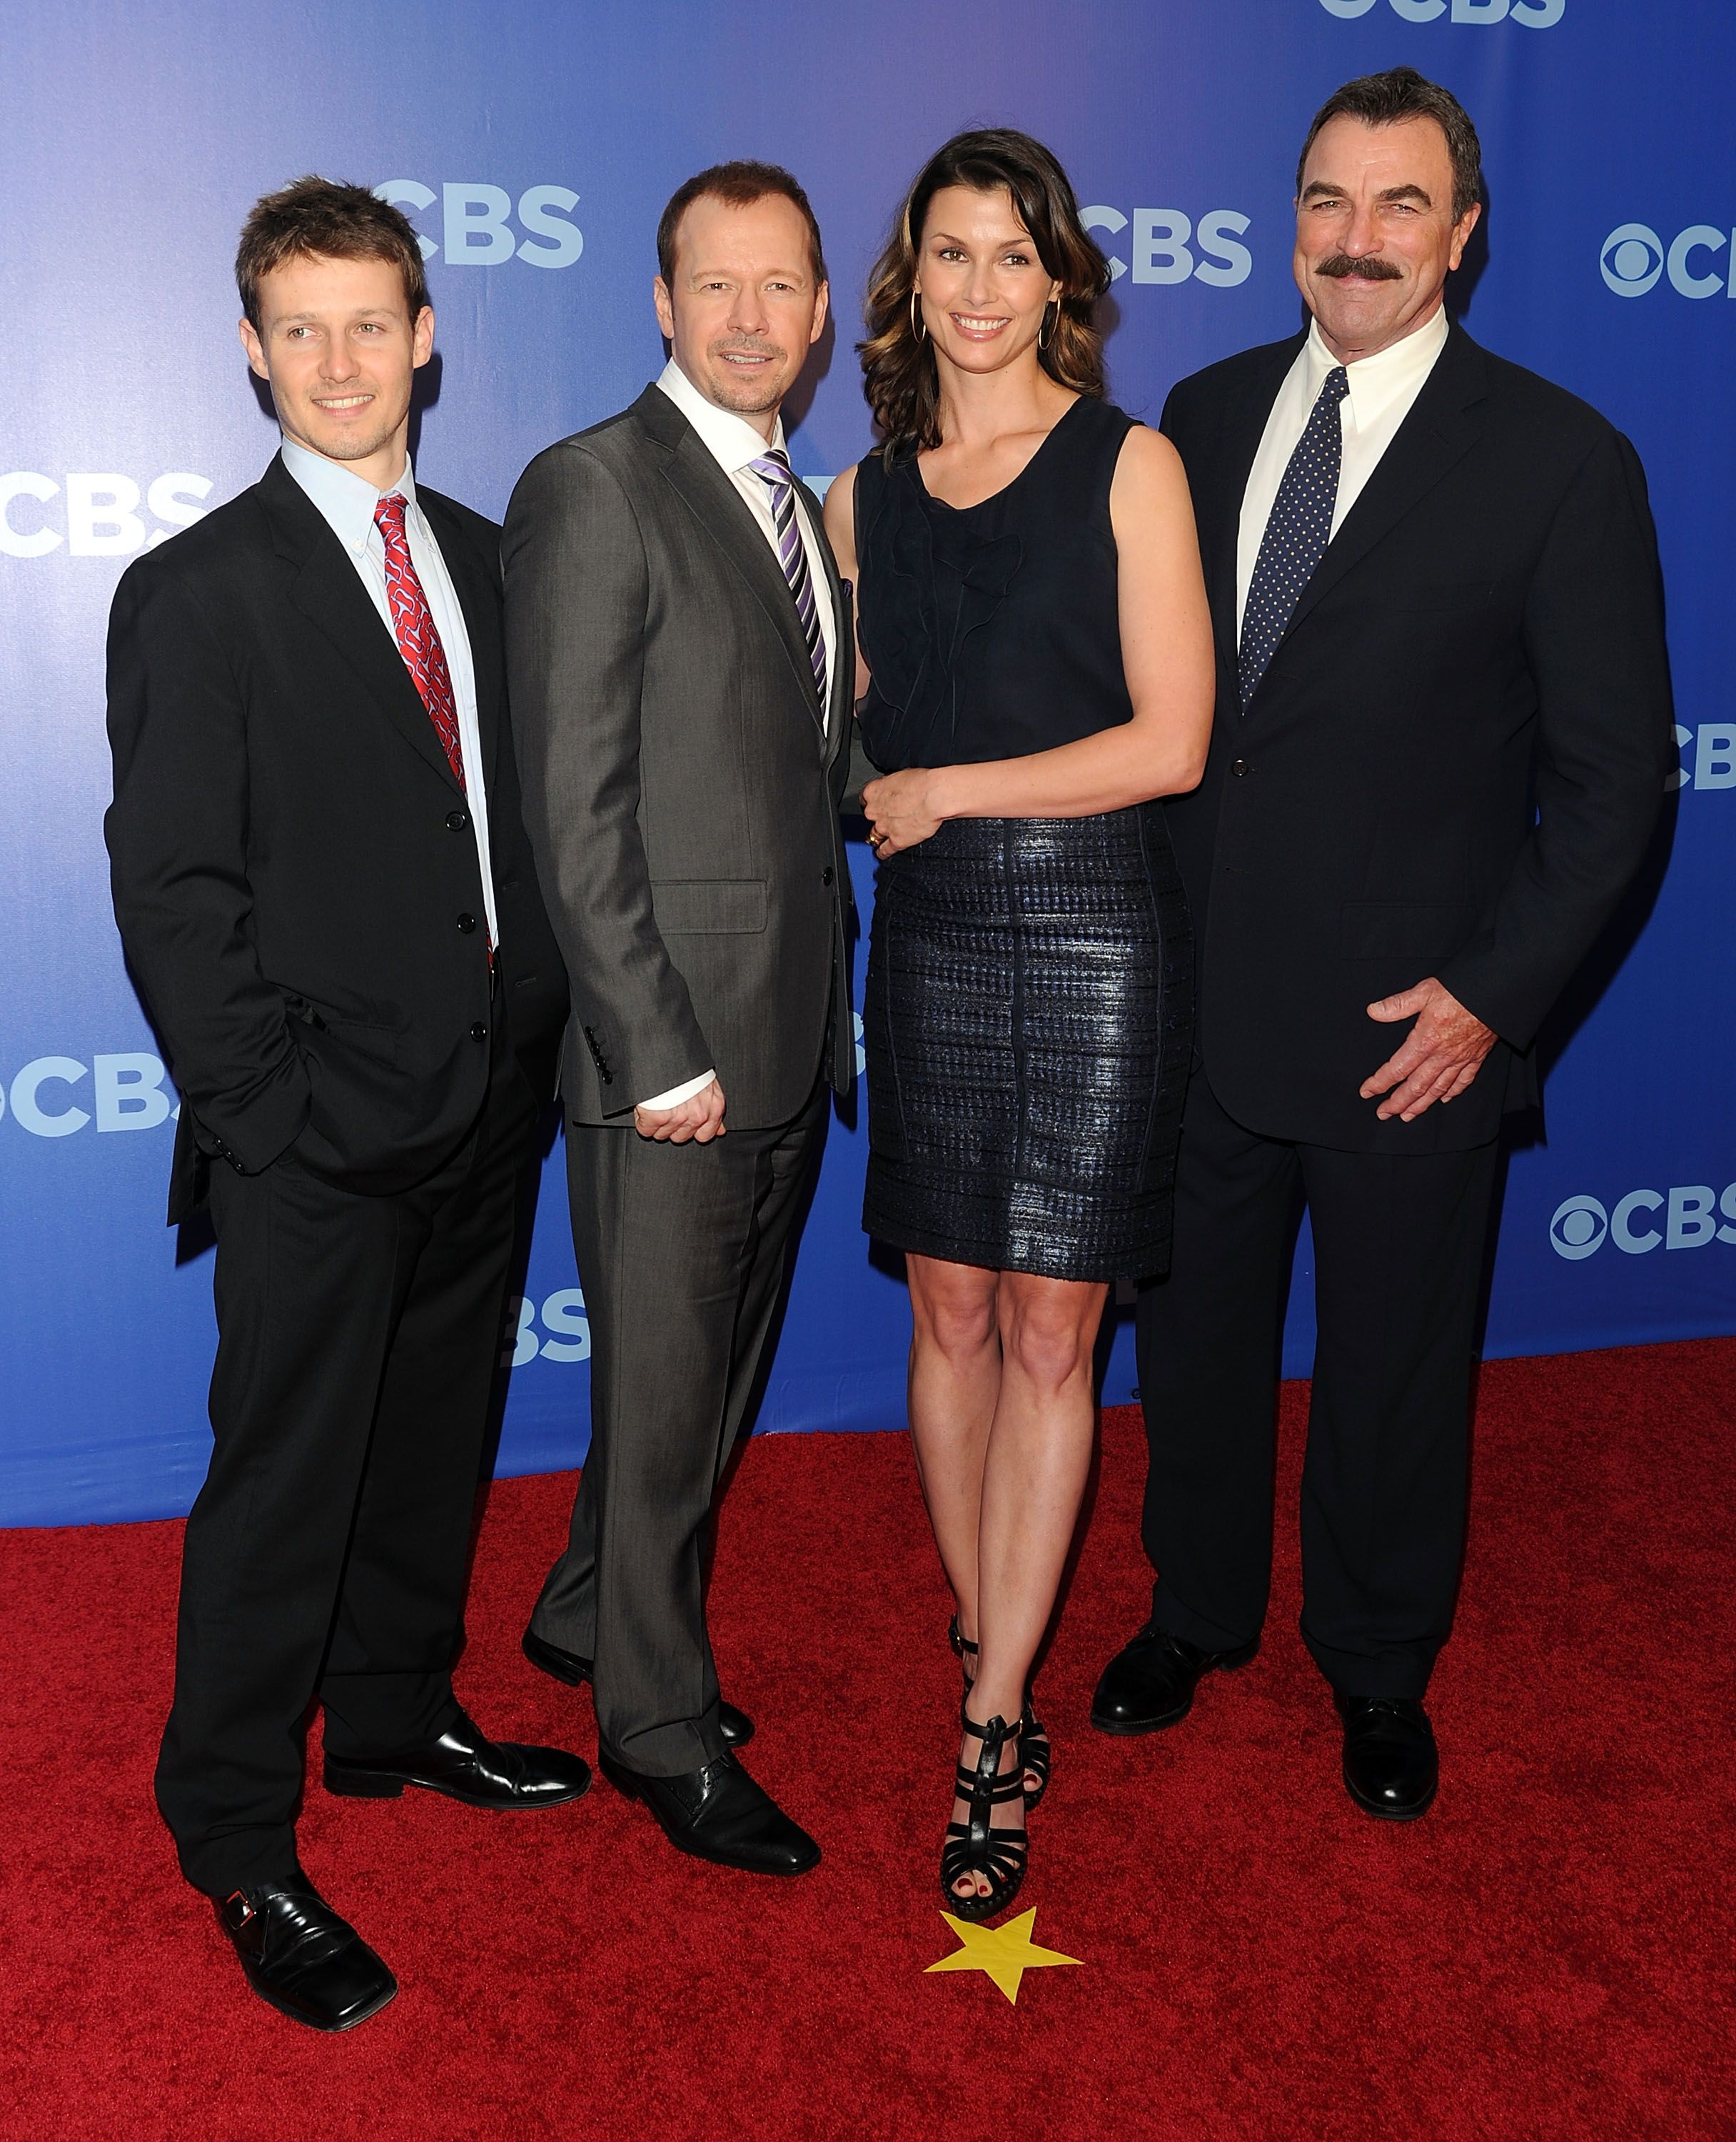 """The cast of """"Blue Bloods"""" attend the 2010 CBS UpFront at Damrosch Park, Lincoln Center on May 19, 2010 in New York City 